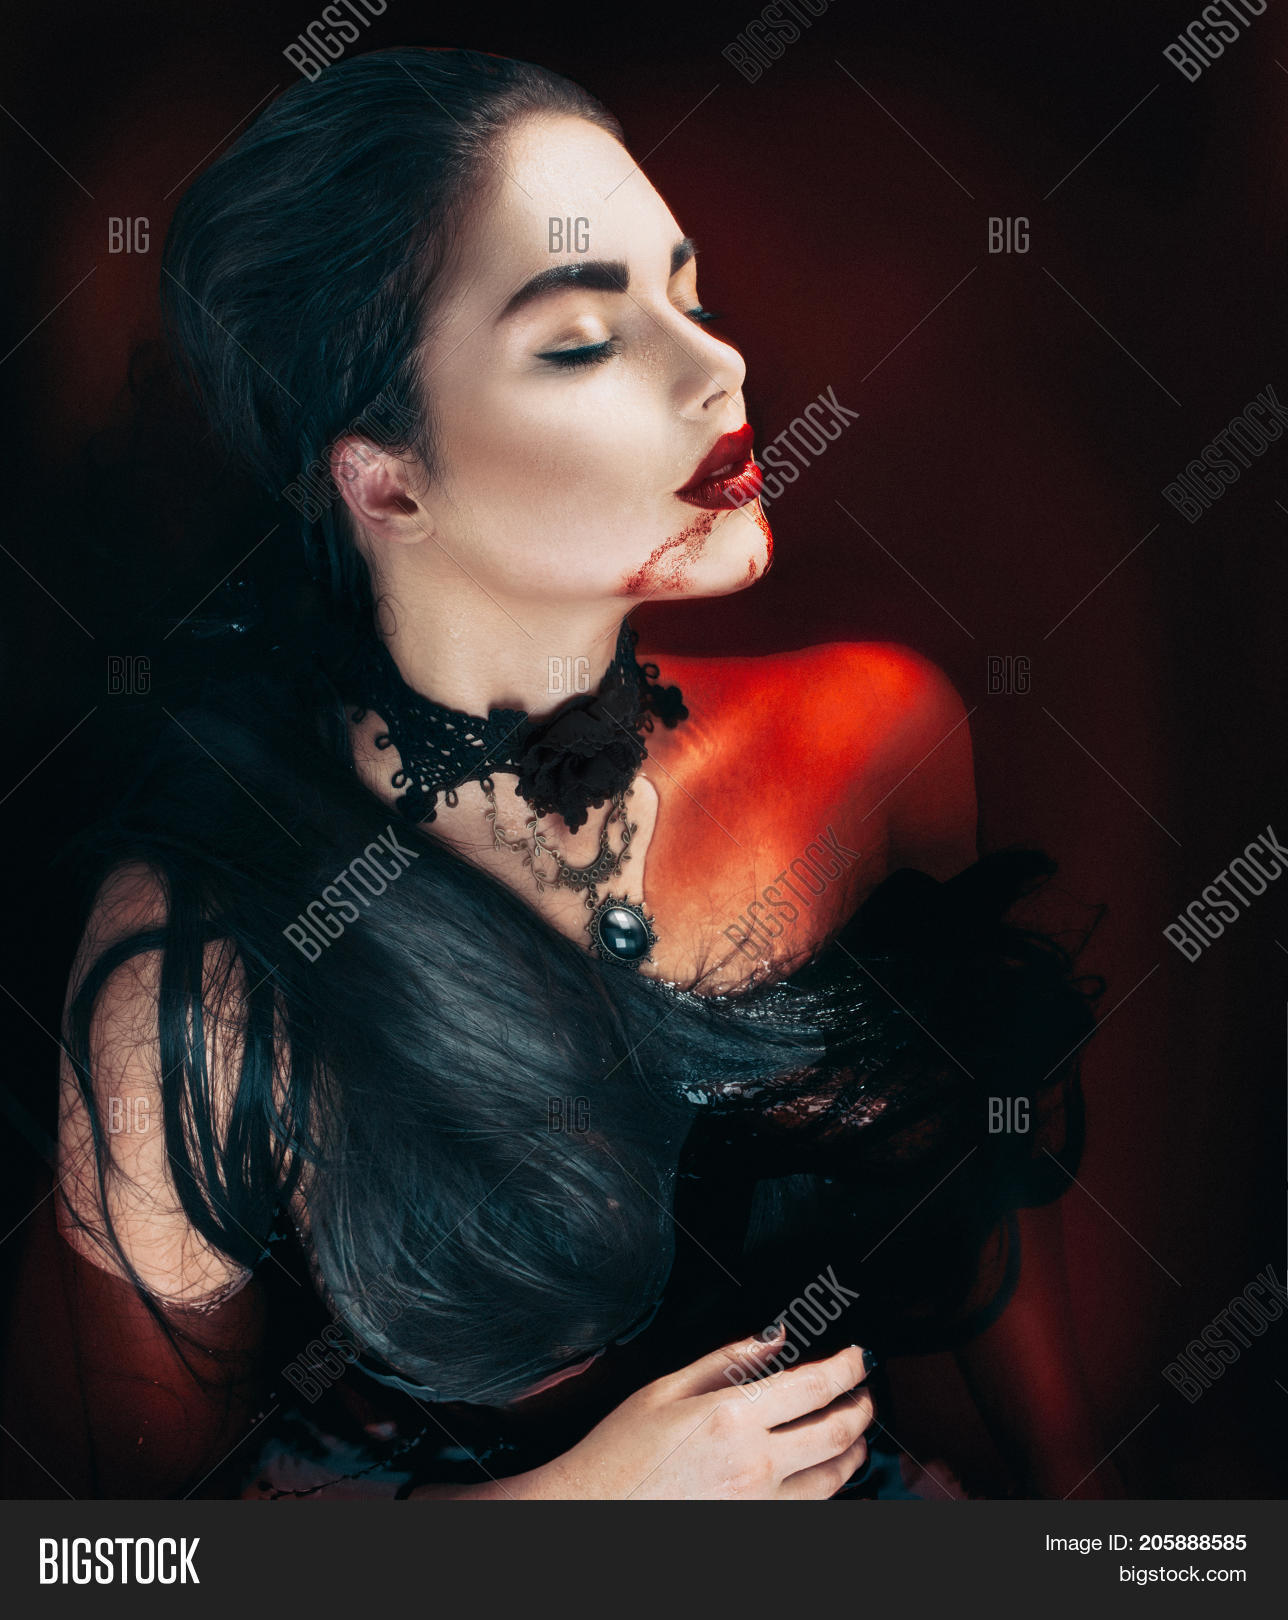 Beauty halloween sexy vampire woman with dripping blood on her mouth lying in a bath full